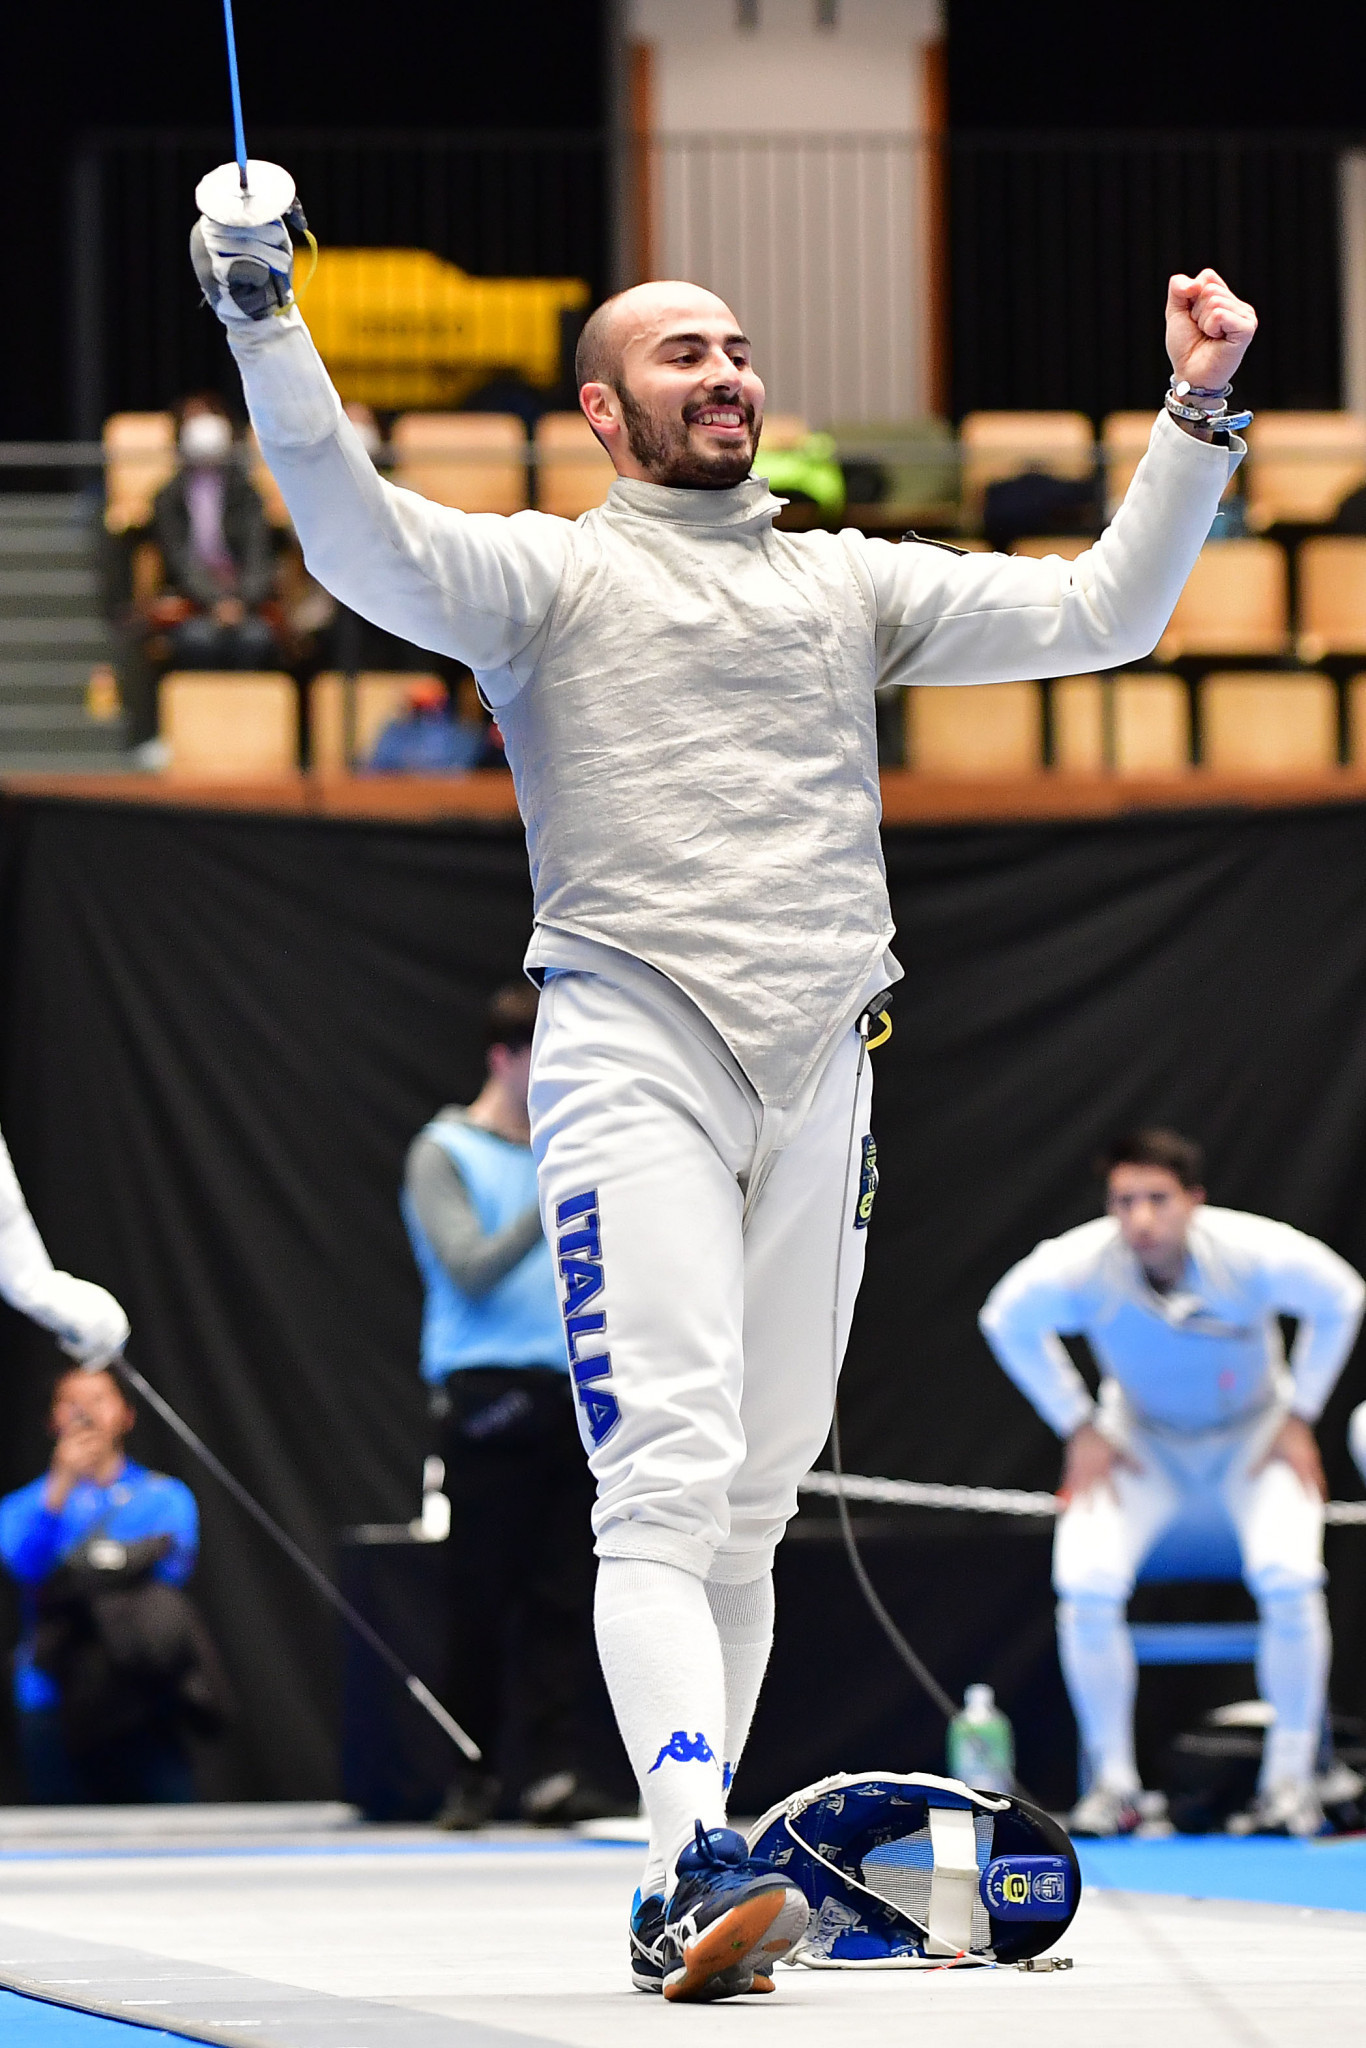 World's best foil and epee fencers gather in Russia, Germany and Colombia for latest round of FIE action